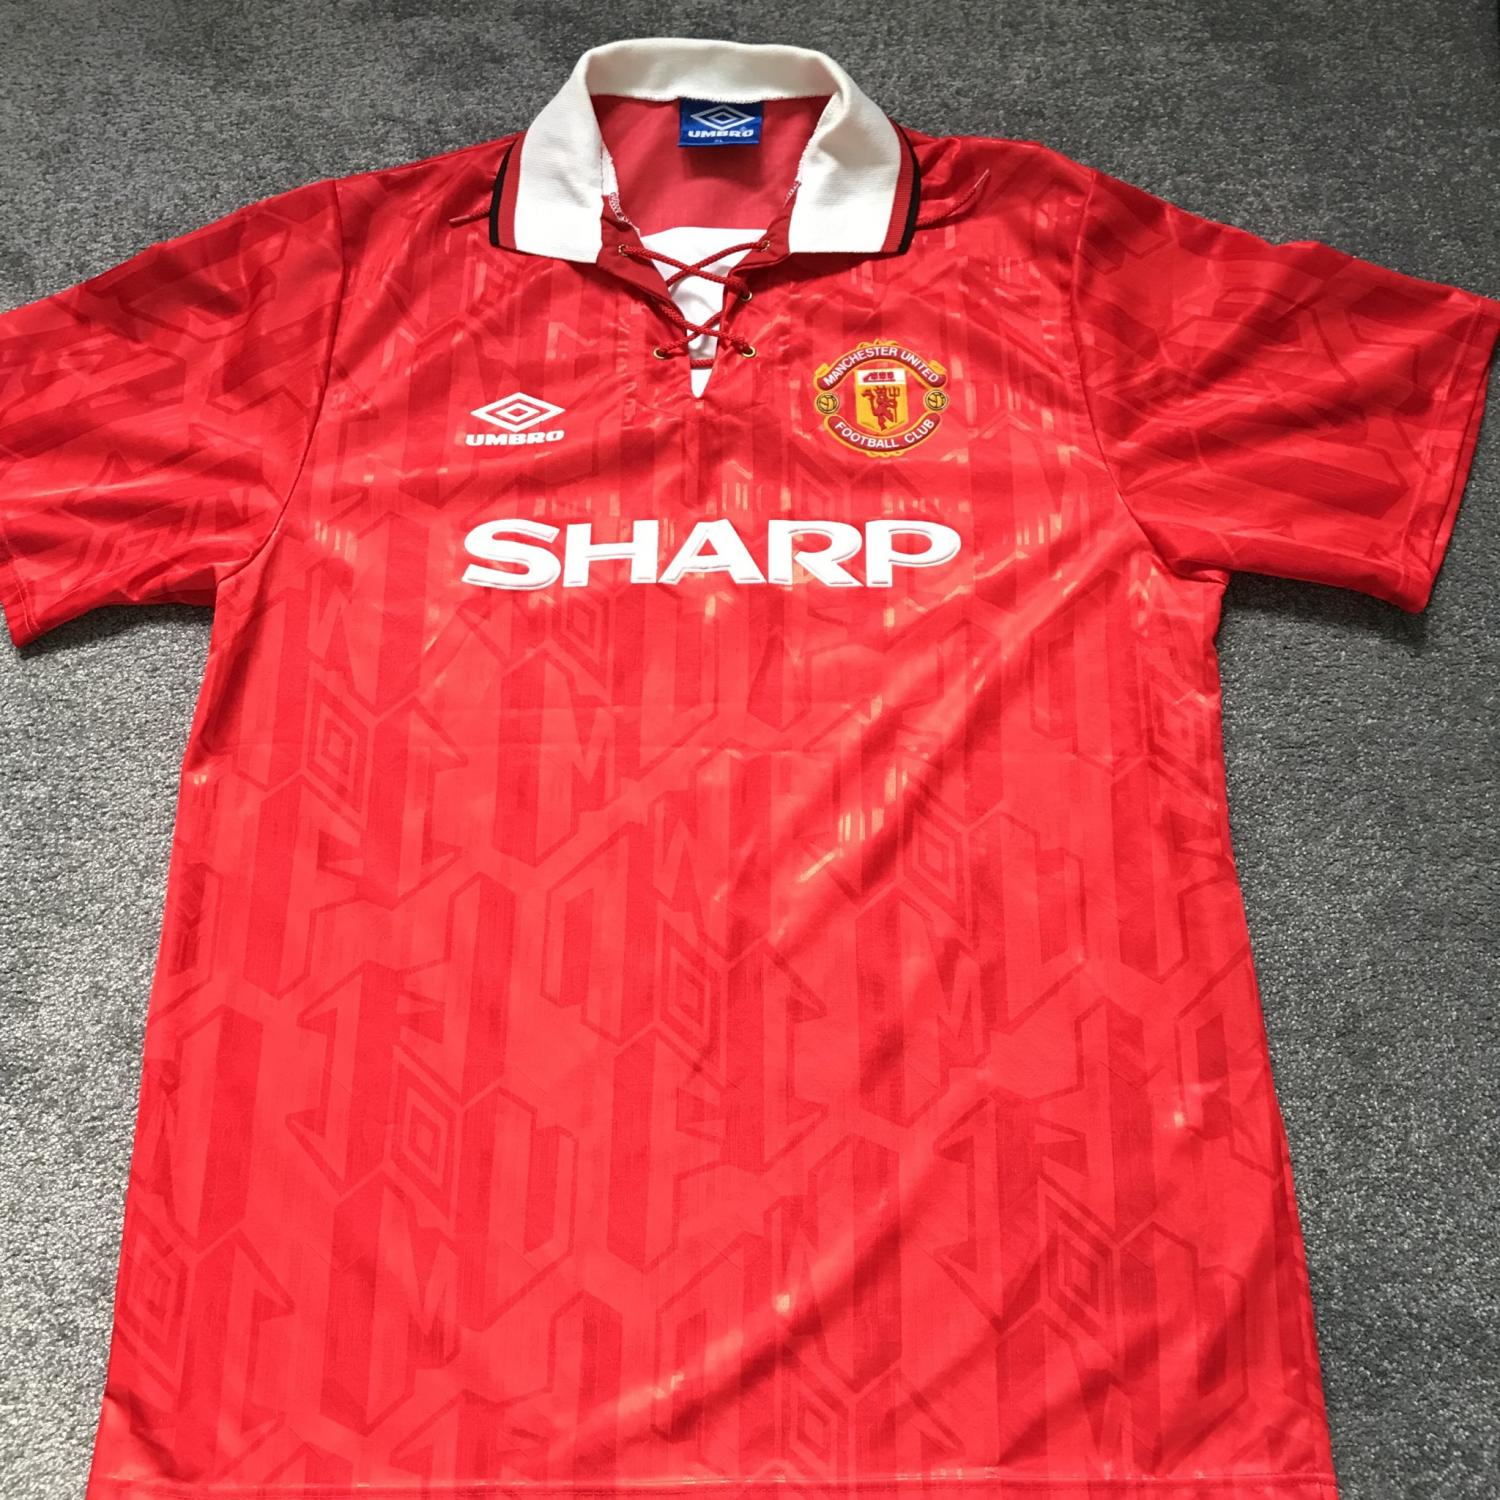 9ba1ddf8f Manchester United Home football shirt 1992 - 1994. Sponsored by Sharp